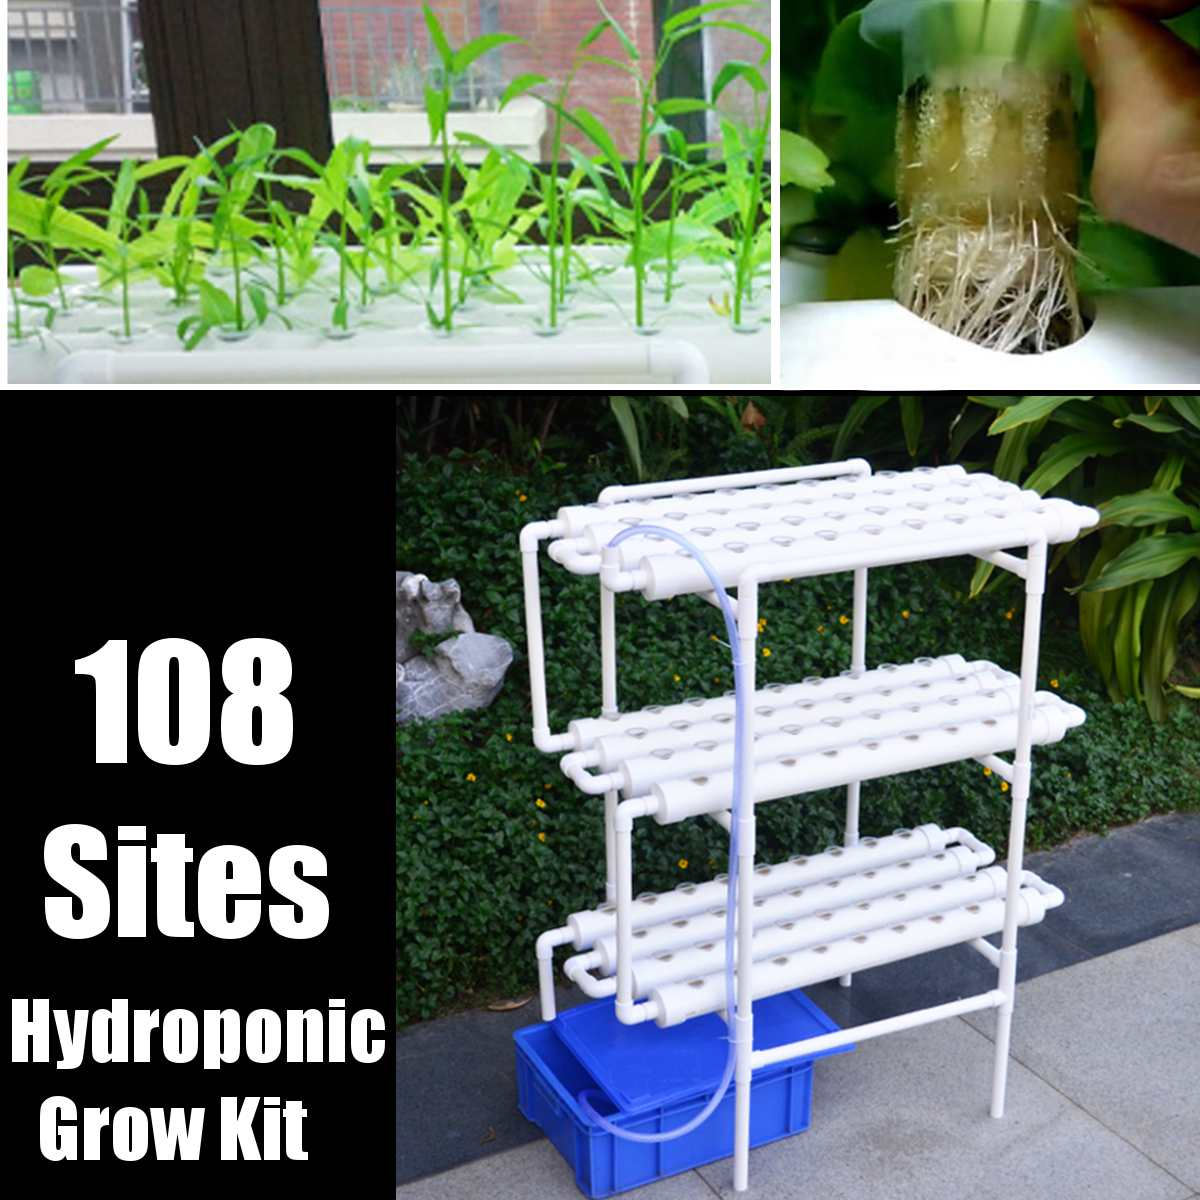 112pc/set 220V Plant Hydroponic Systems Grow Kit  108 Holes Nursery Pots Anti Pest Soilless Cultivation Indoor Garden Culture Pl